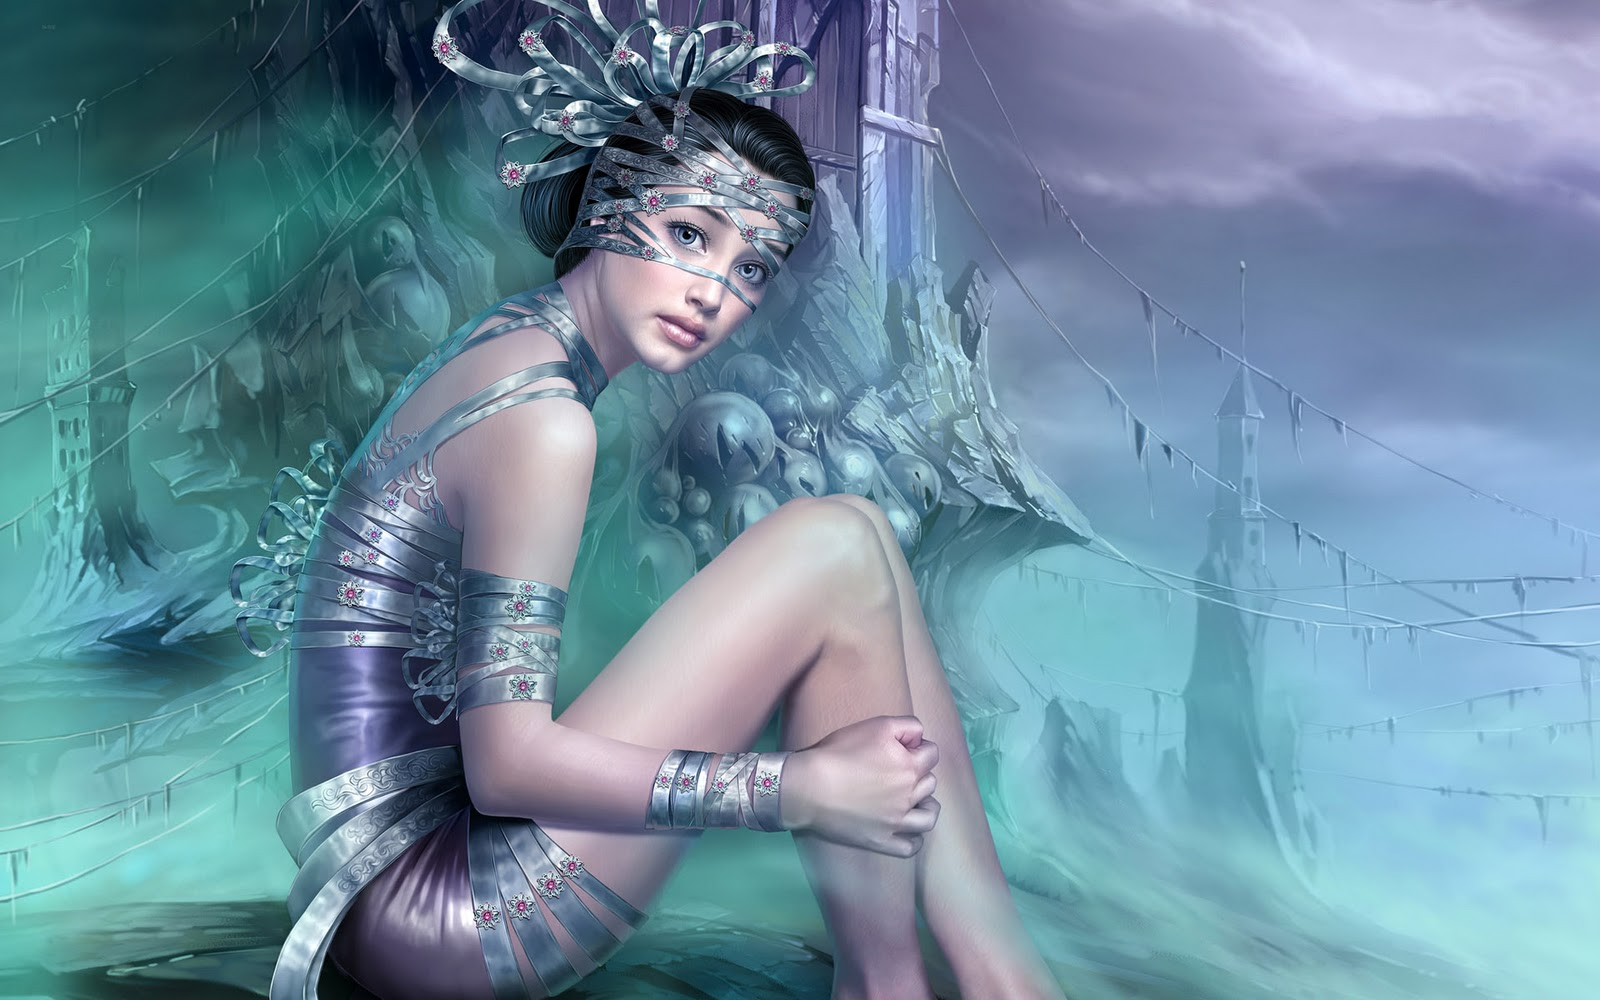 Amazing cg art girls wallpapers - Beautiful girl screensaver ...